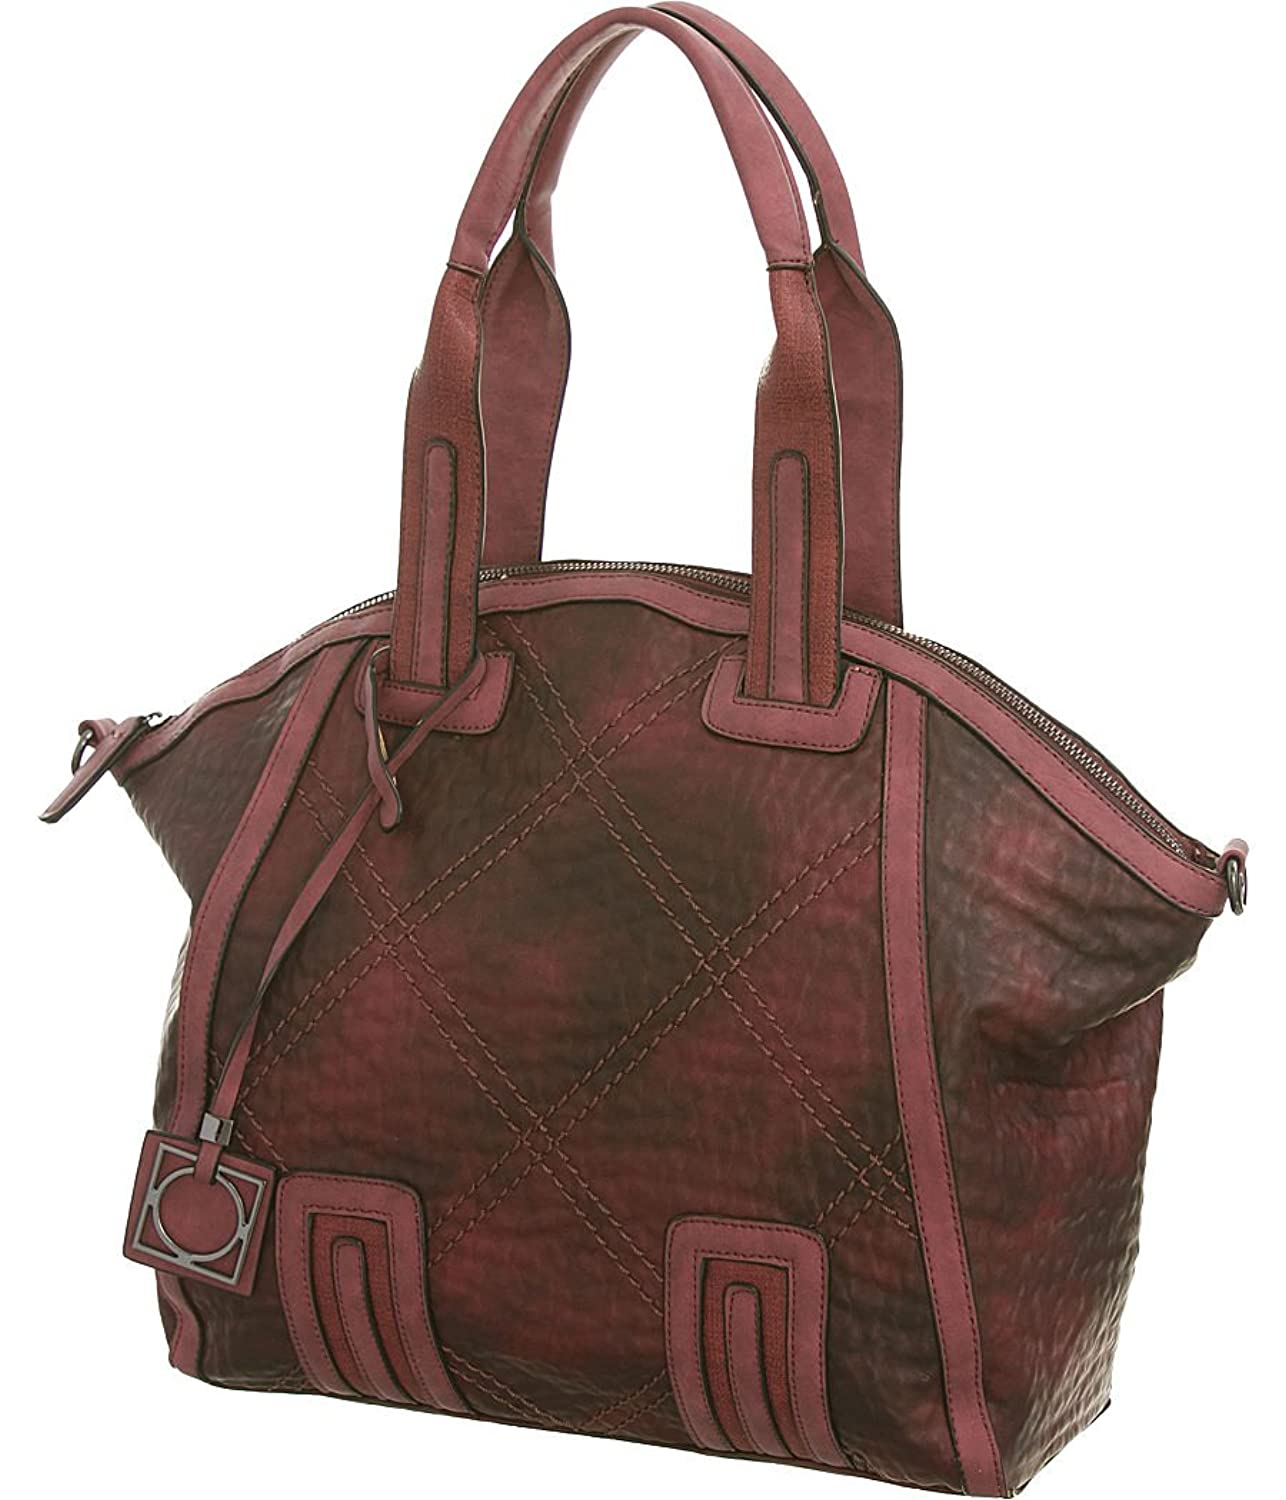 Diamond Stitches Oversized Traveler's Tote Bag with Attachable Shoulder Strap